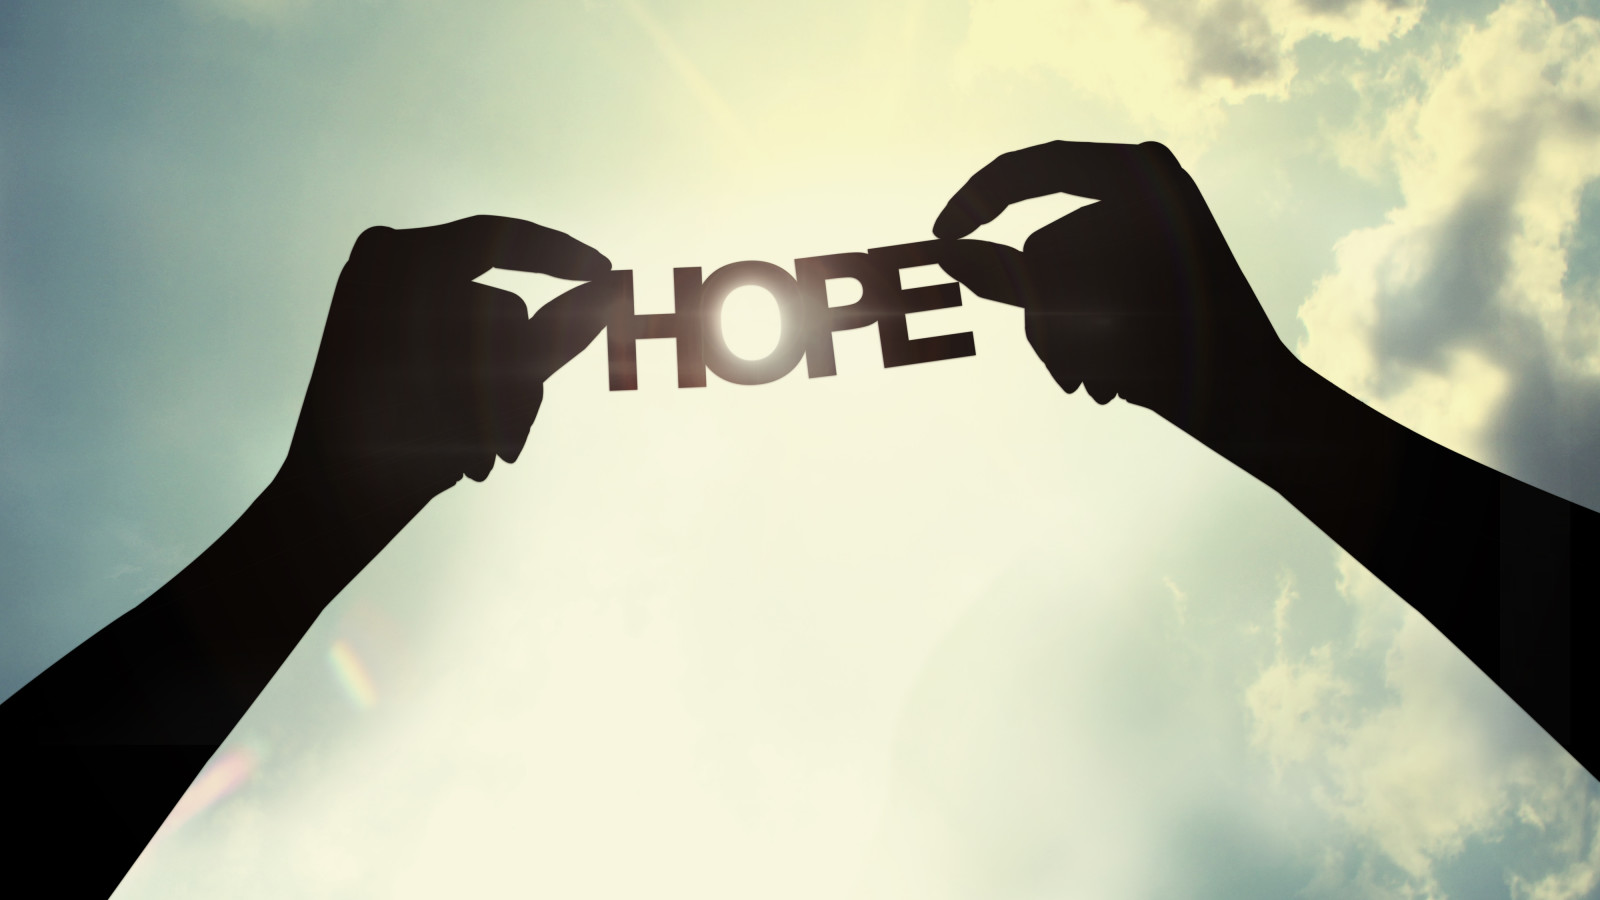 holding a paper cut of hope shutterstock_137307233